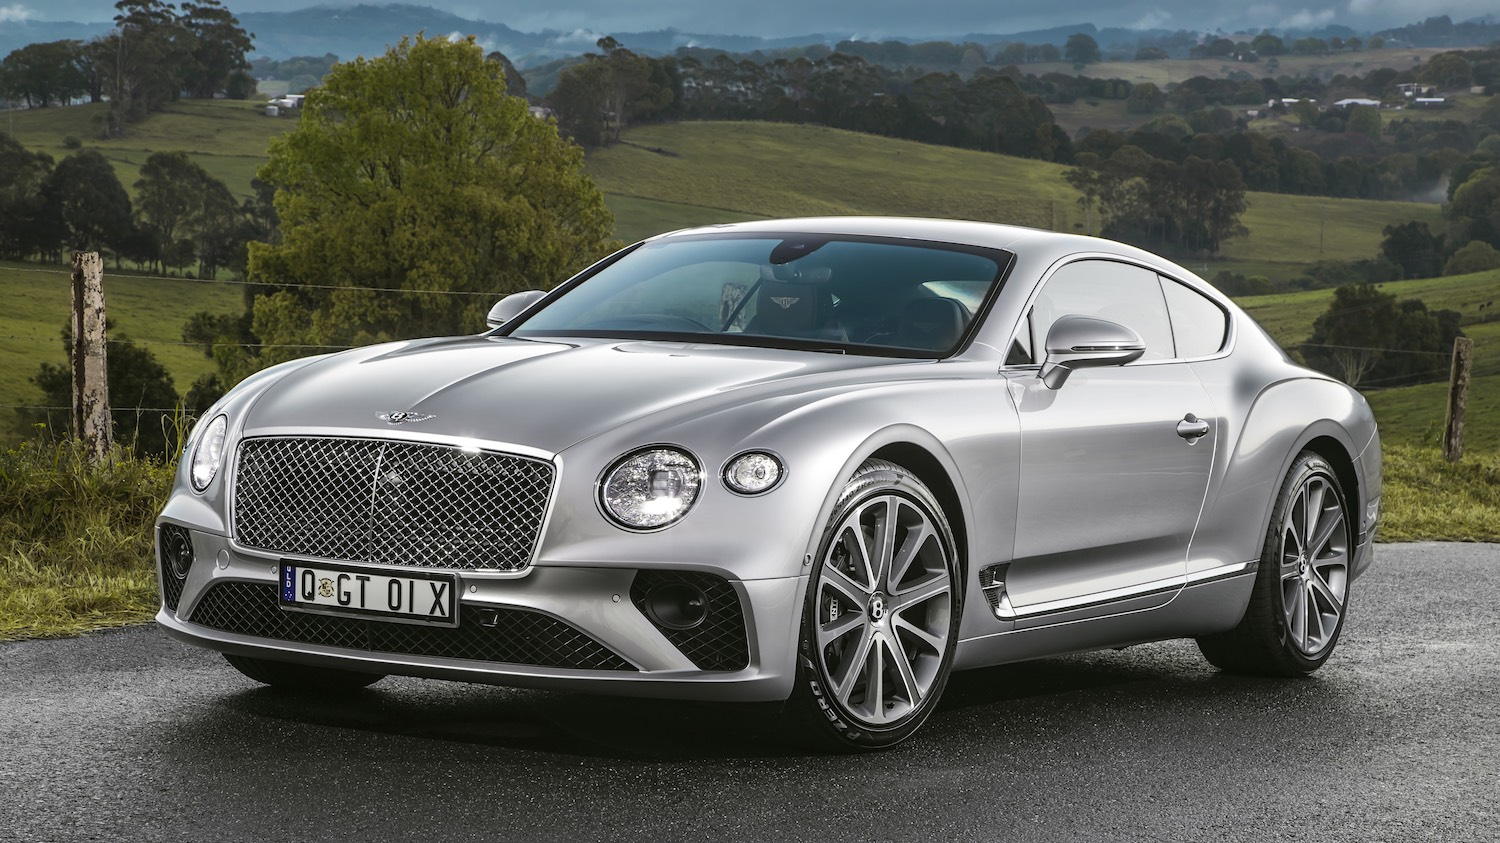 Maggie Barry reviews the New Bentley Continental GT for Drive 7